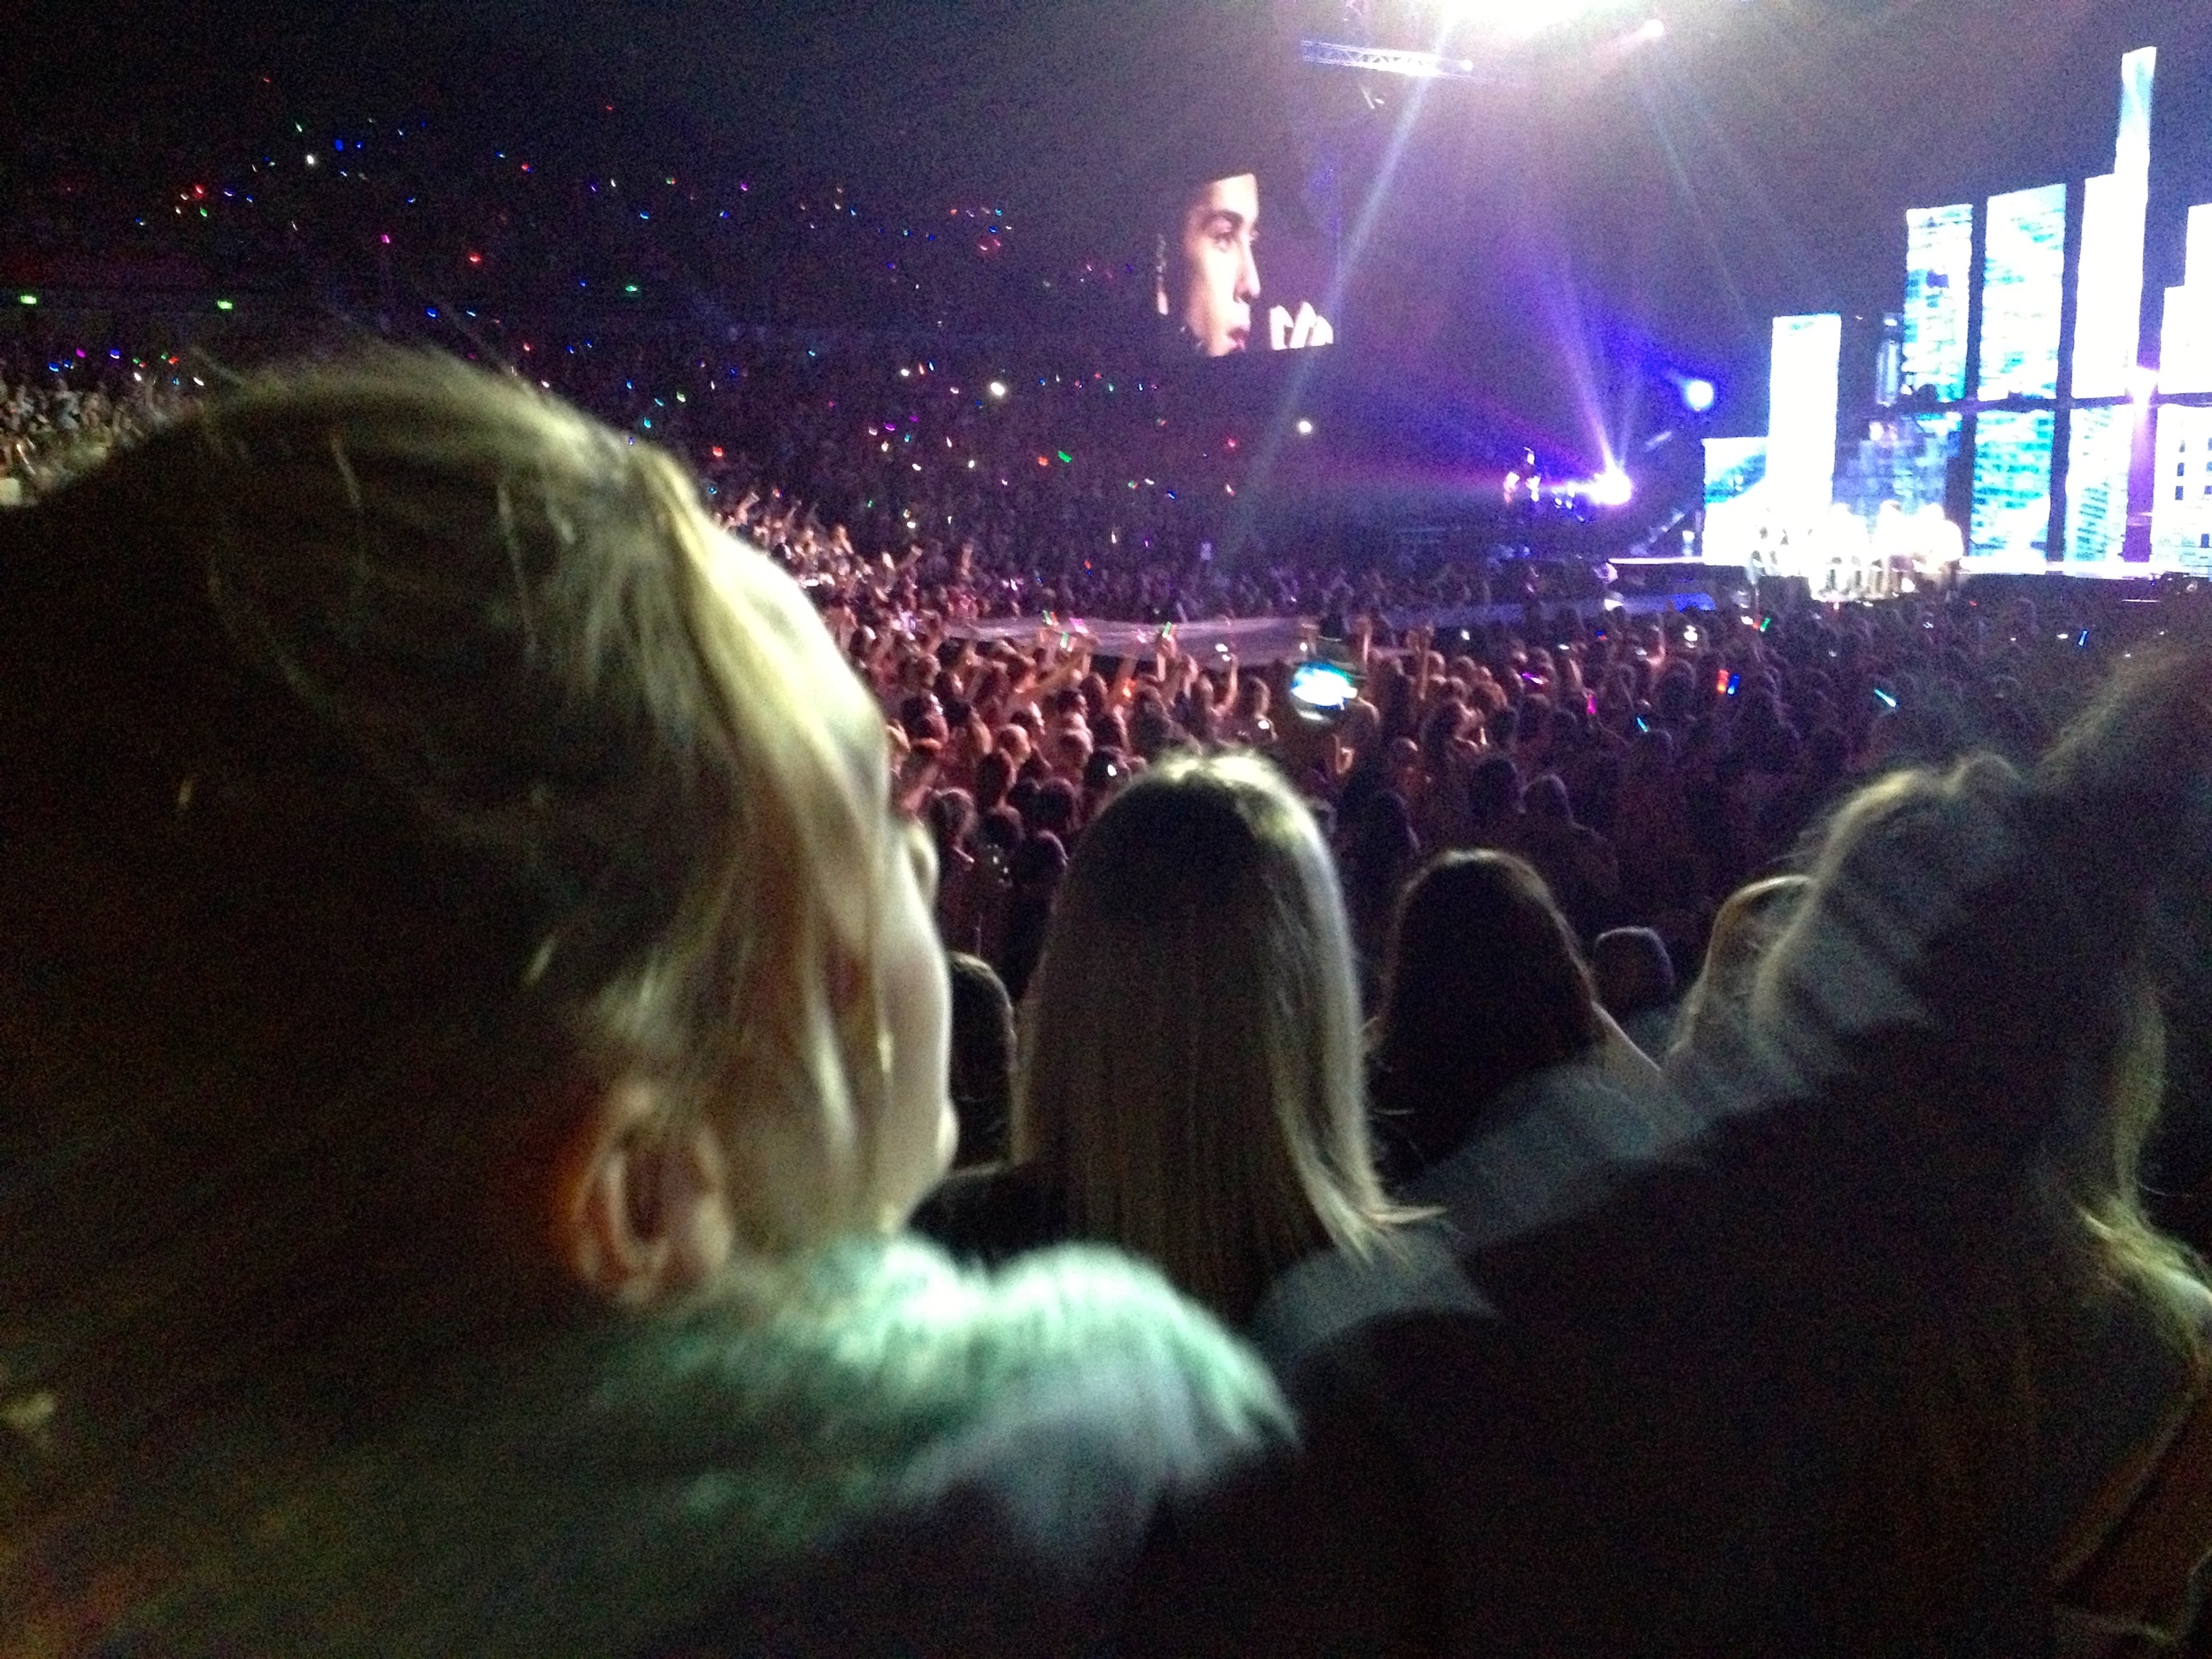 Abi at the one concert she got to go to - One Direction October 2013